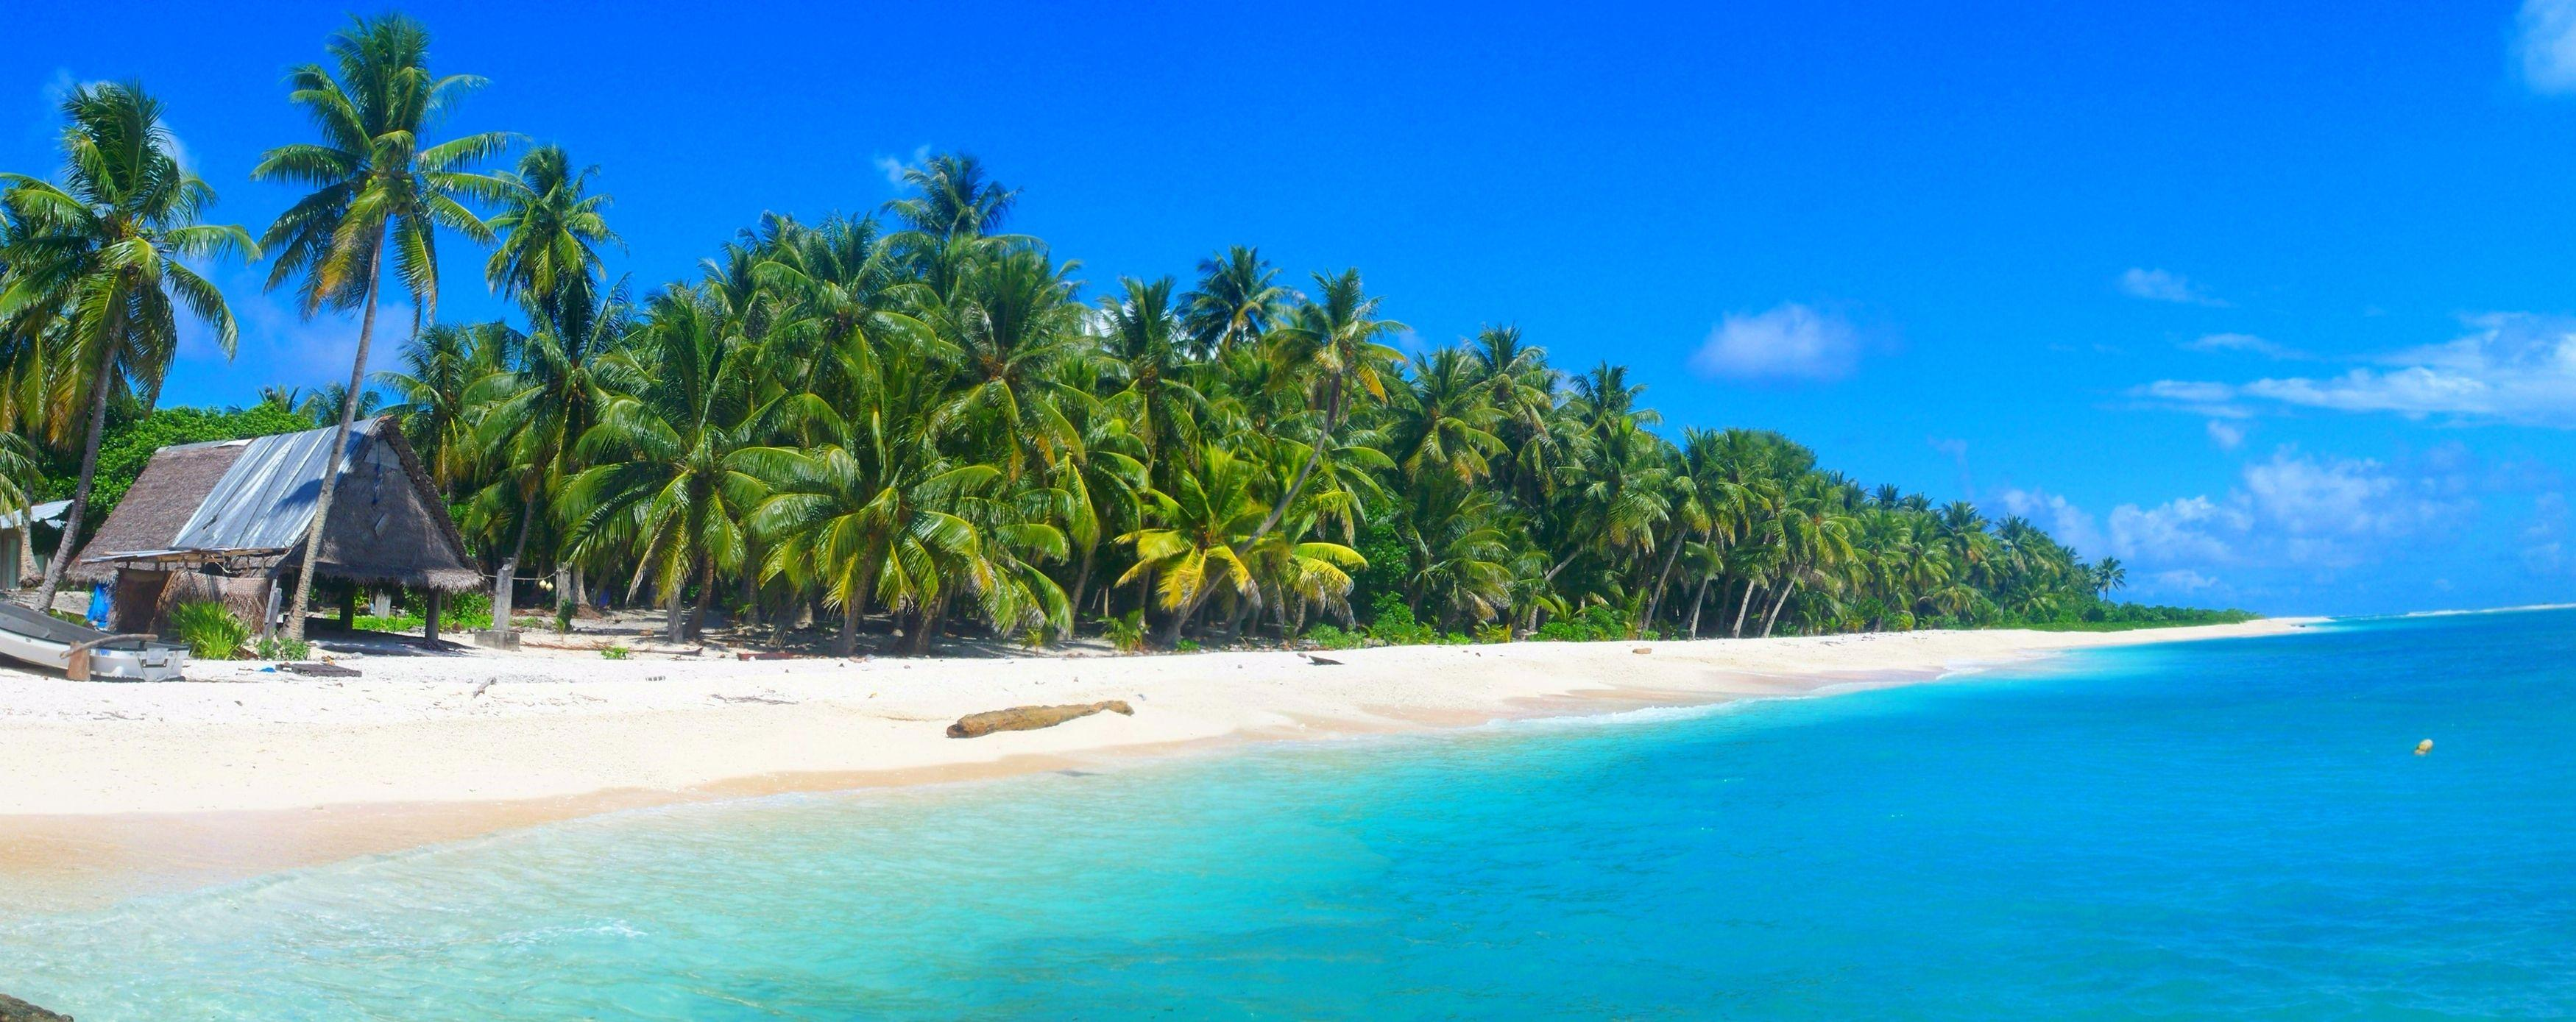 palm trees, summer, beautiful, beach, hut, white sand, boat ...